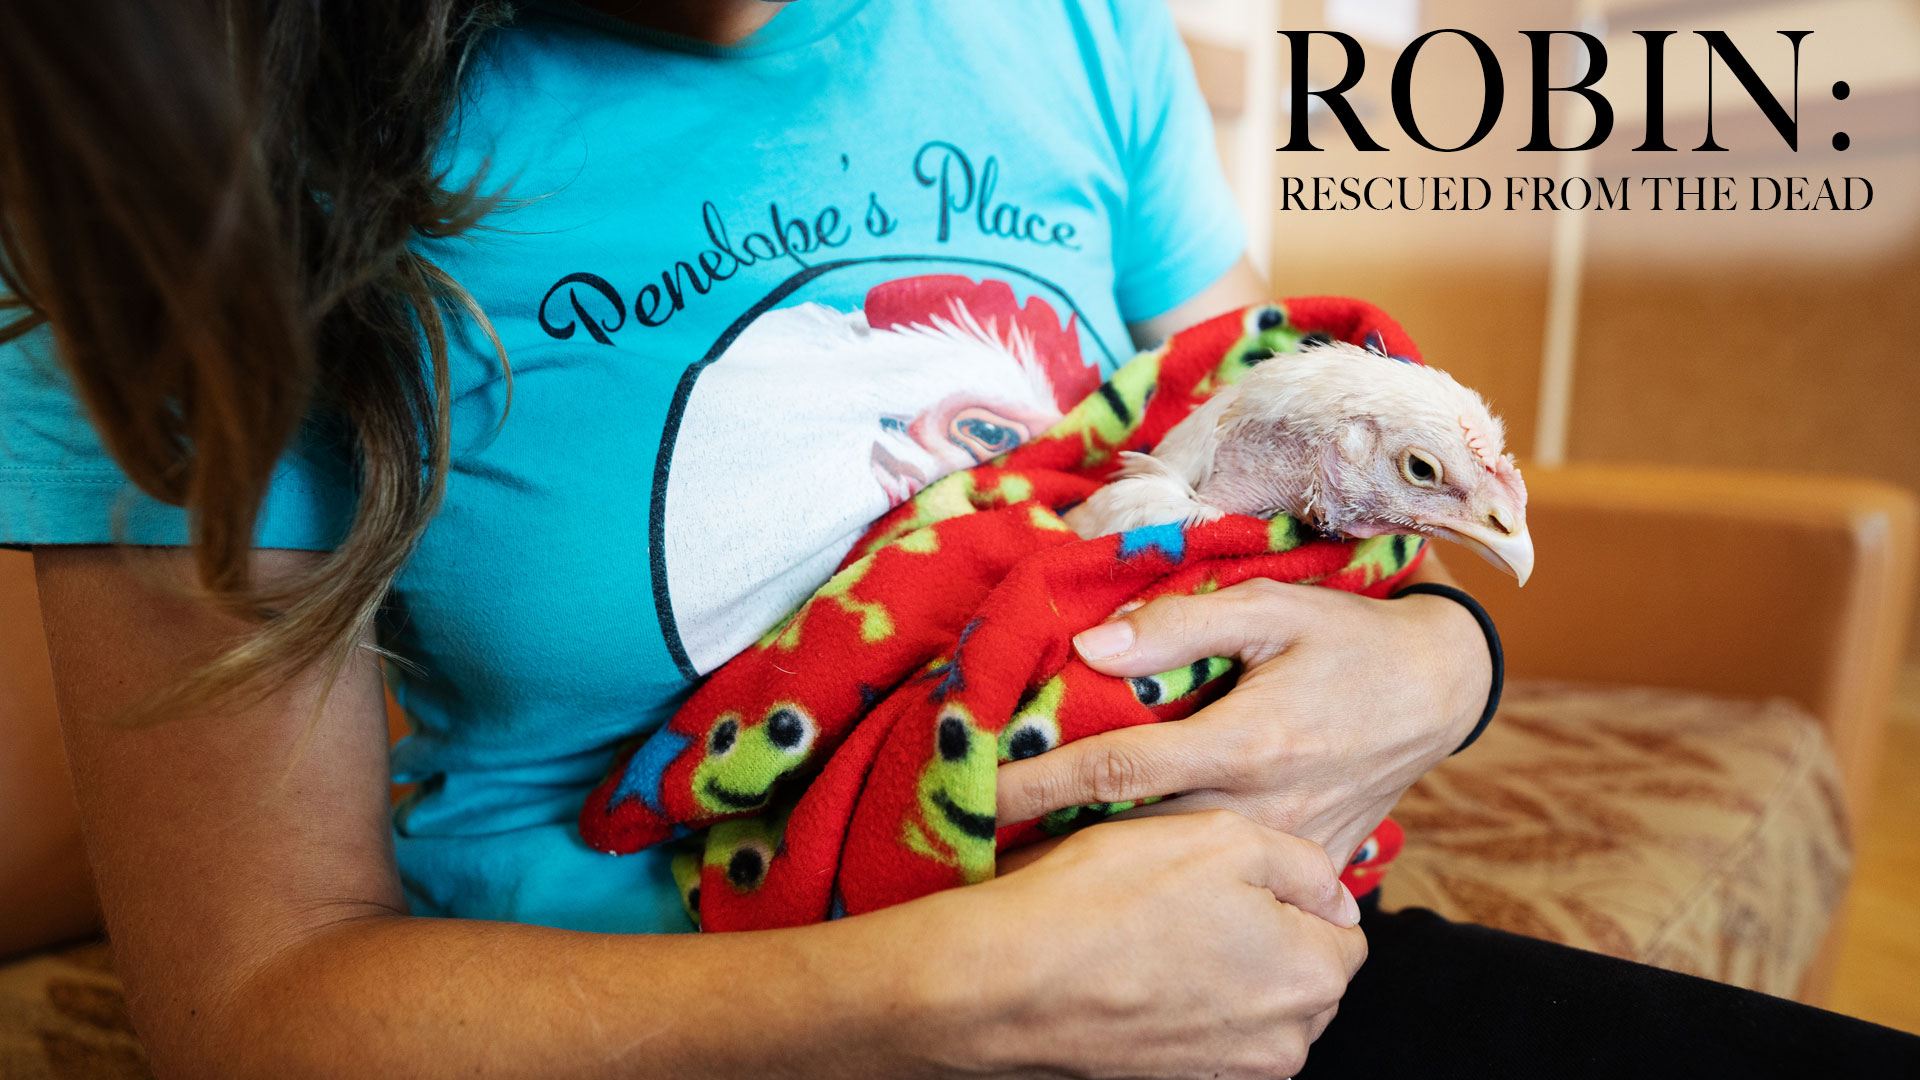 Robin the chicken wrapped in a blanket and craddled